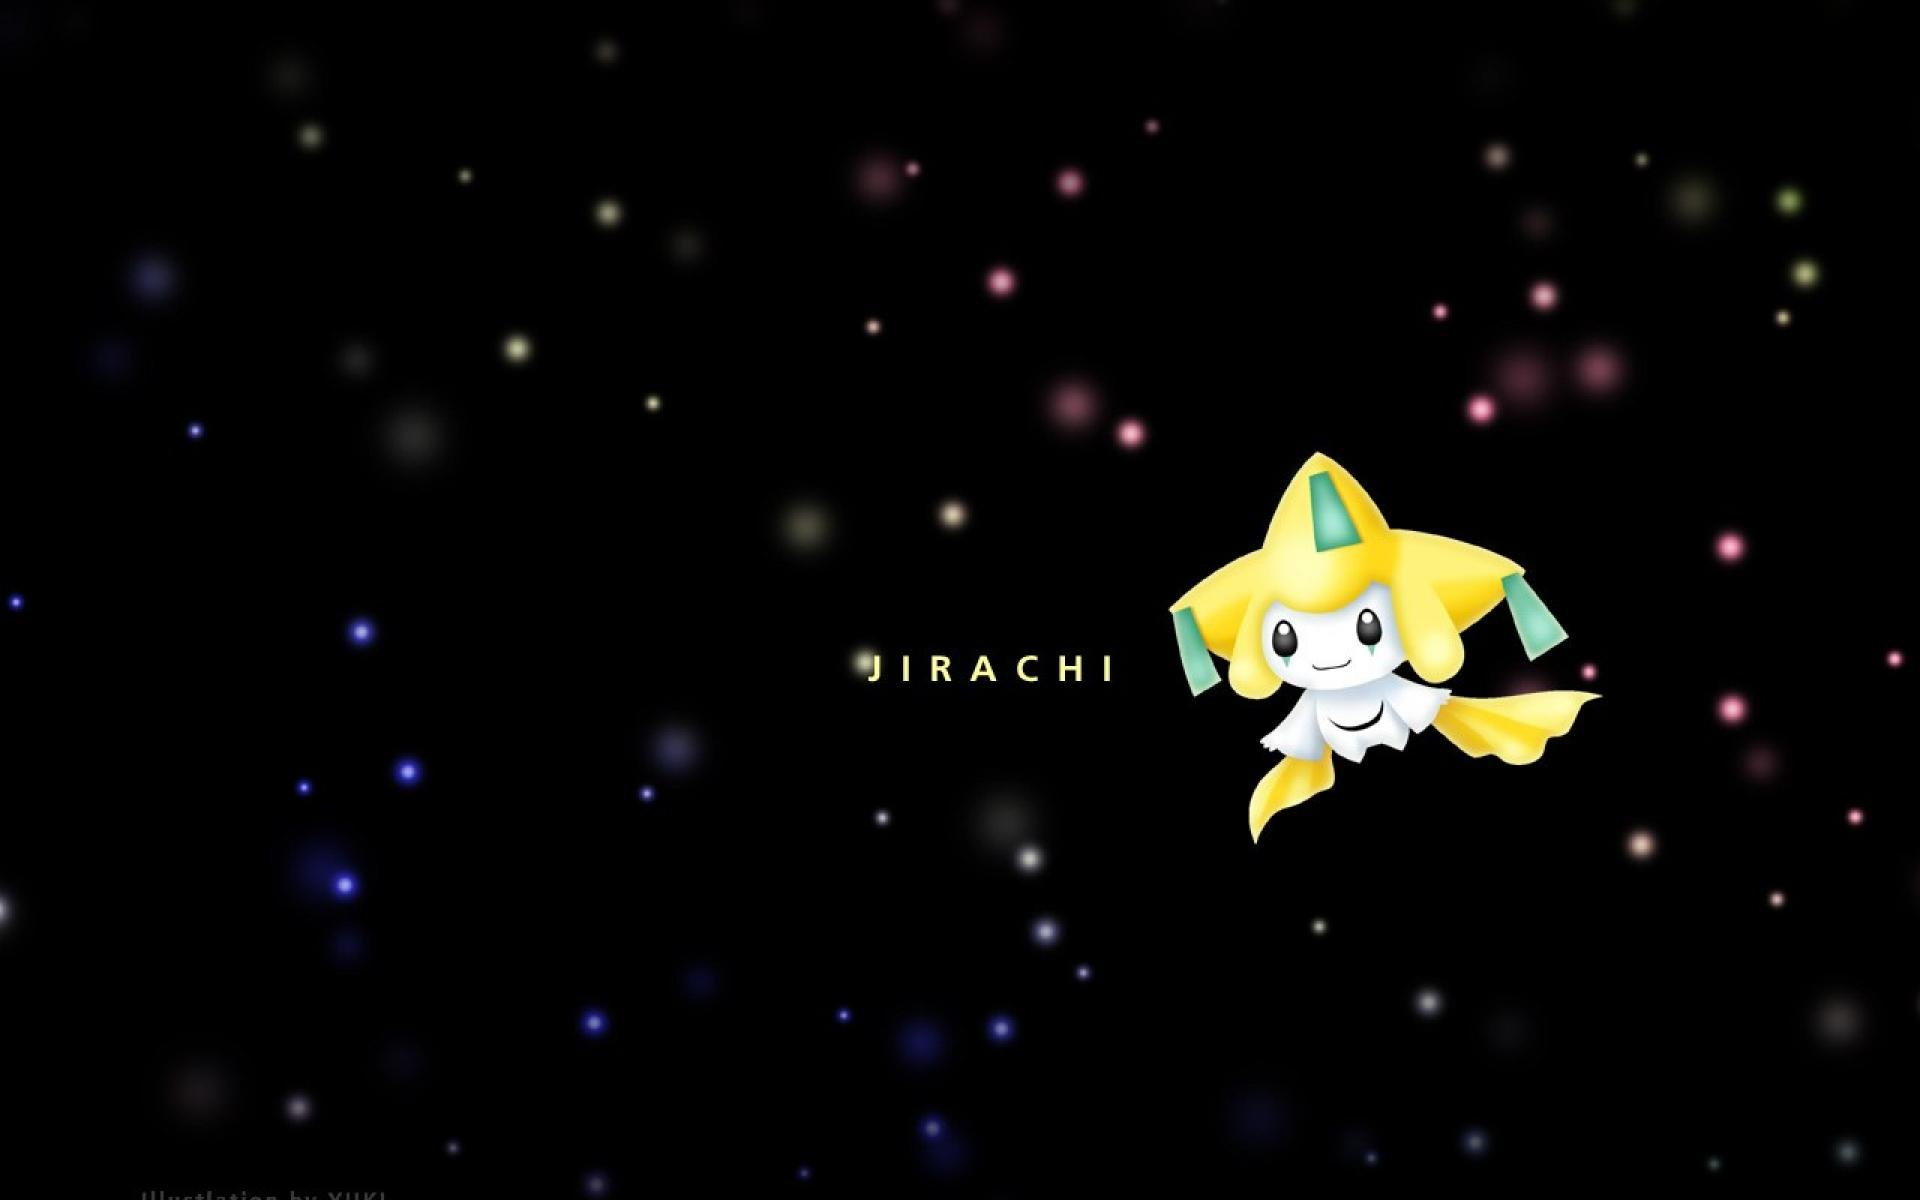 High Resolution Wallpaper Cars Girls Jirachi Hd Wallpapers